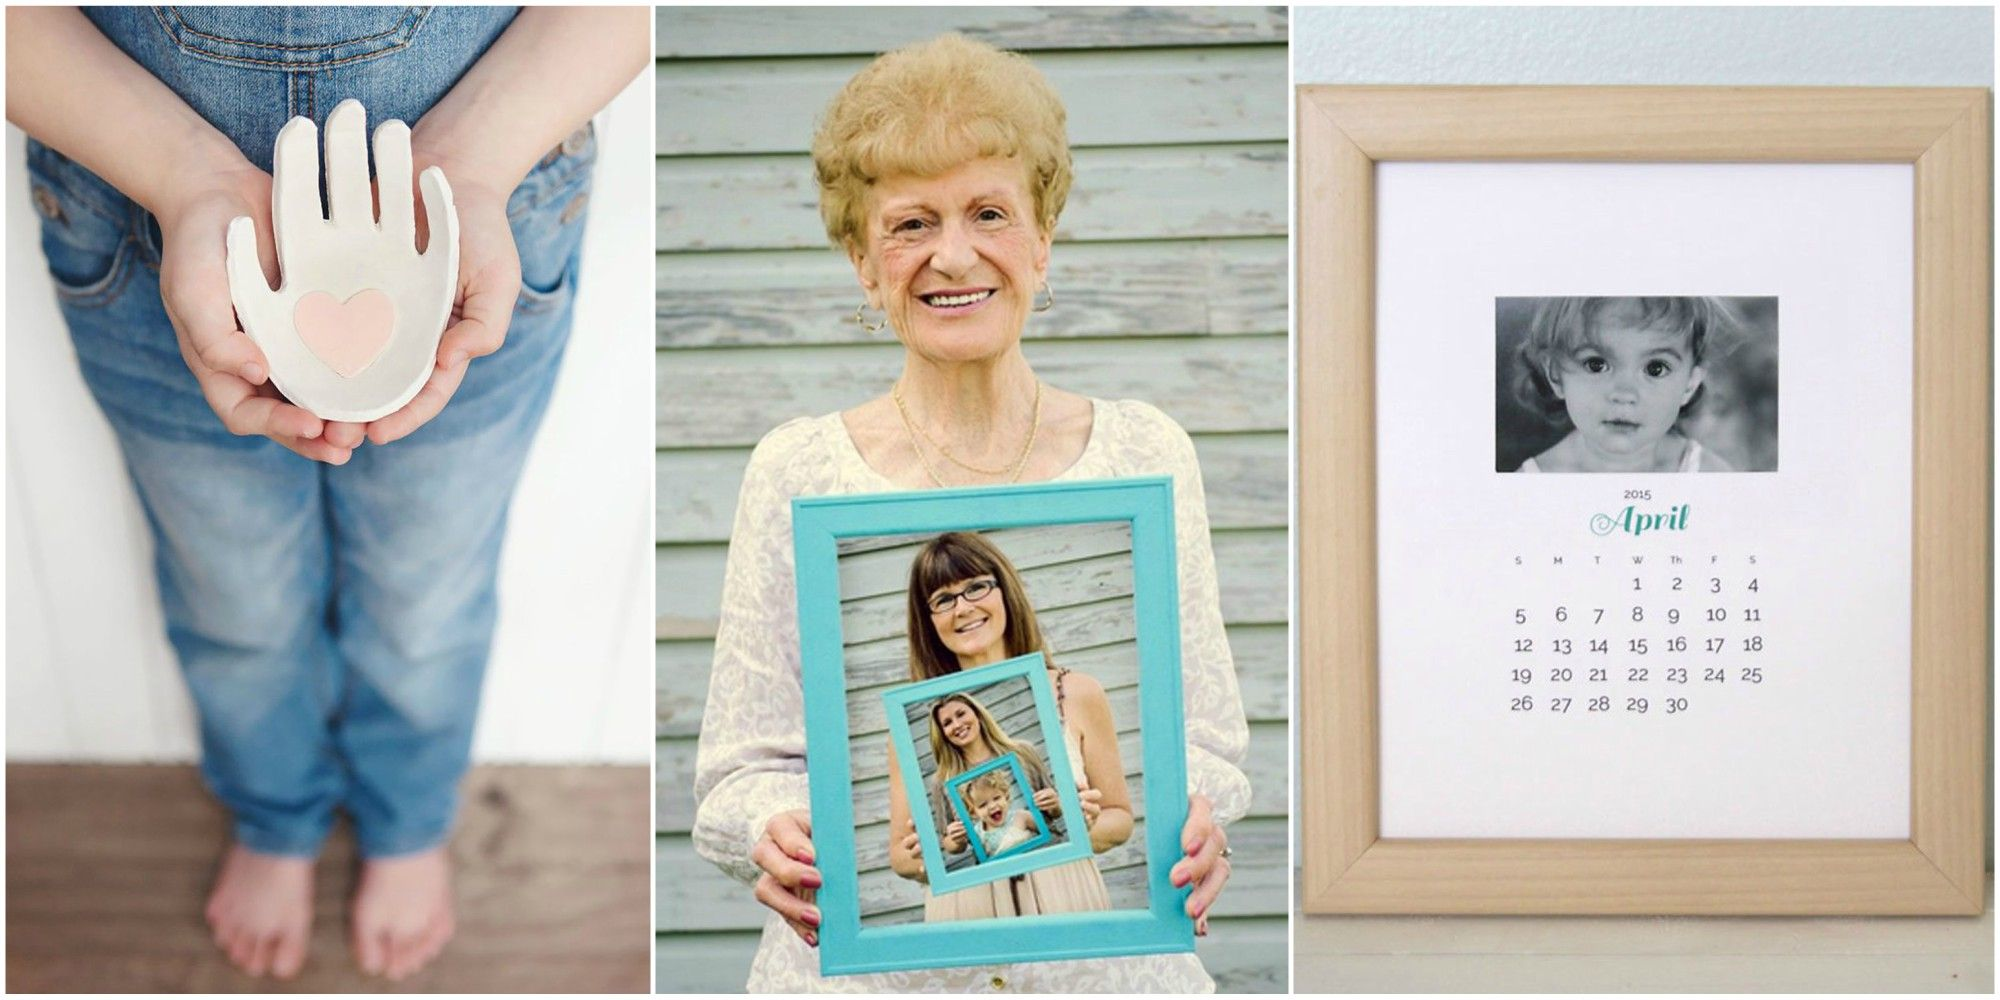 gift for grandma. CL. This Motheru0027s Day ...  sc 1 st  Country Living Magazine & 18 Best Motheru0027s Day Gifts for Grandma - Crafts You Can Make for Grandma